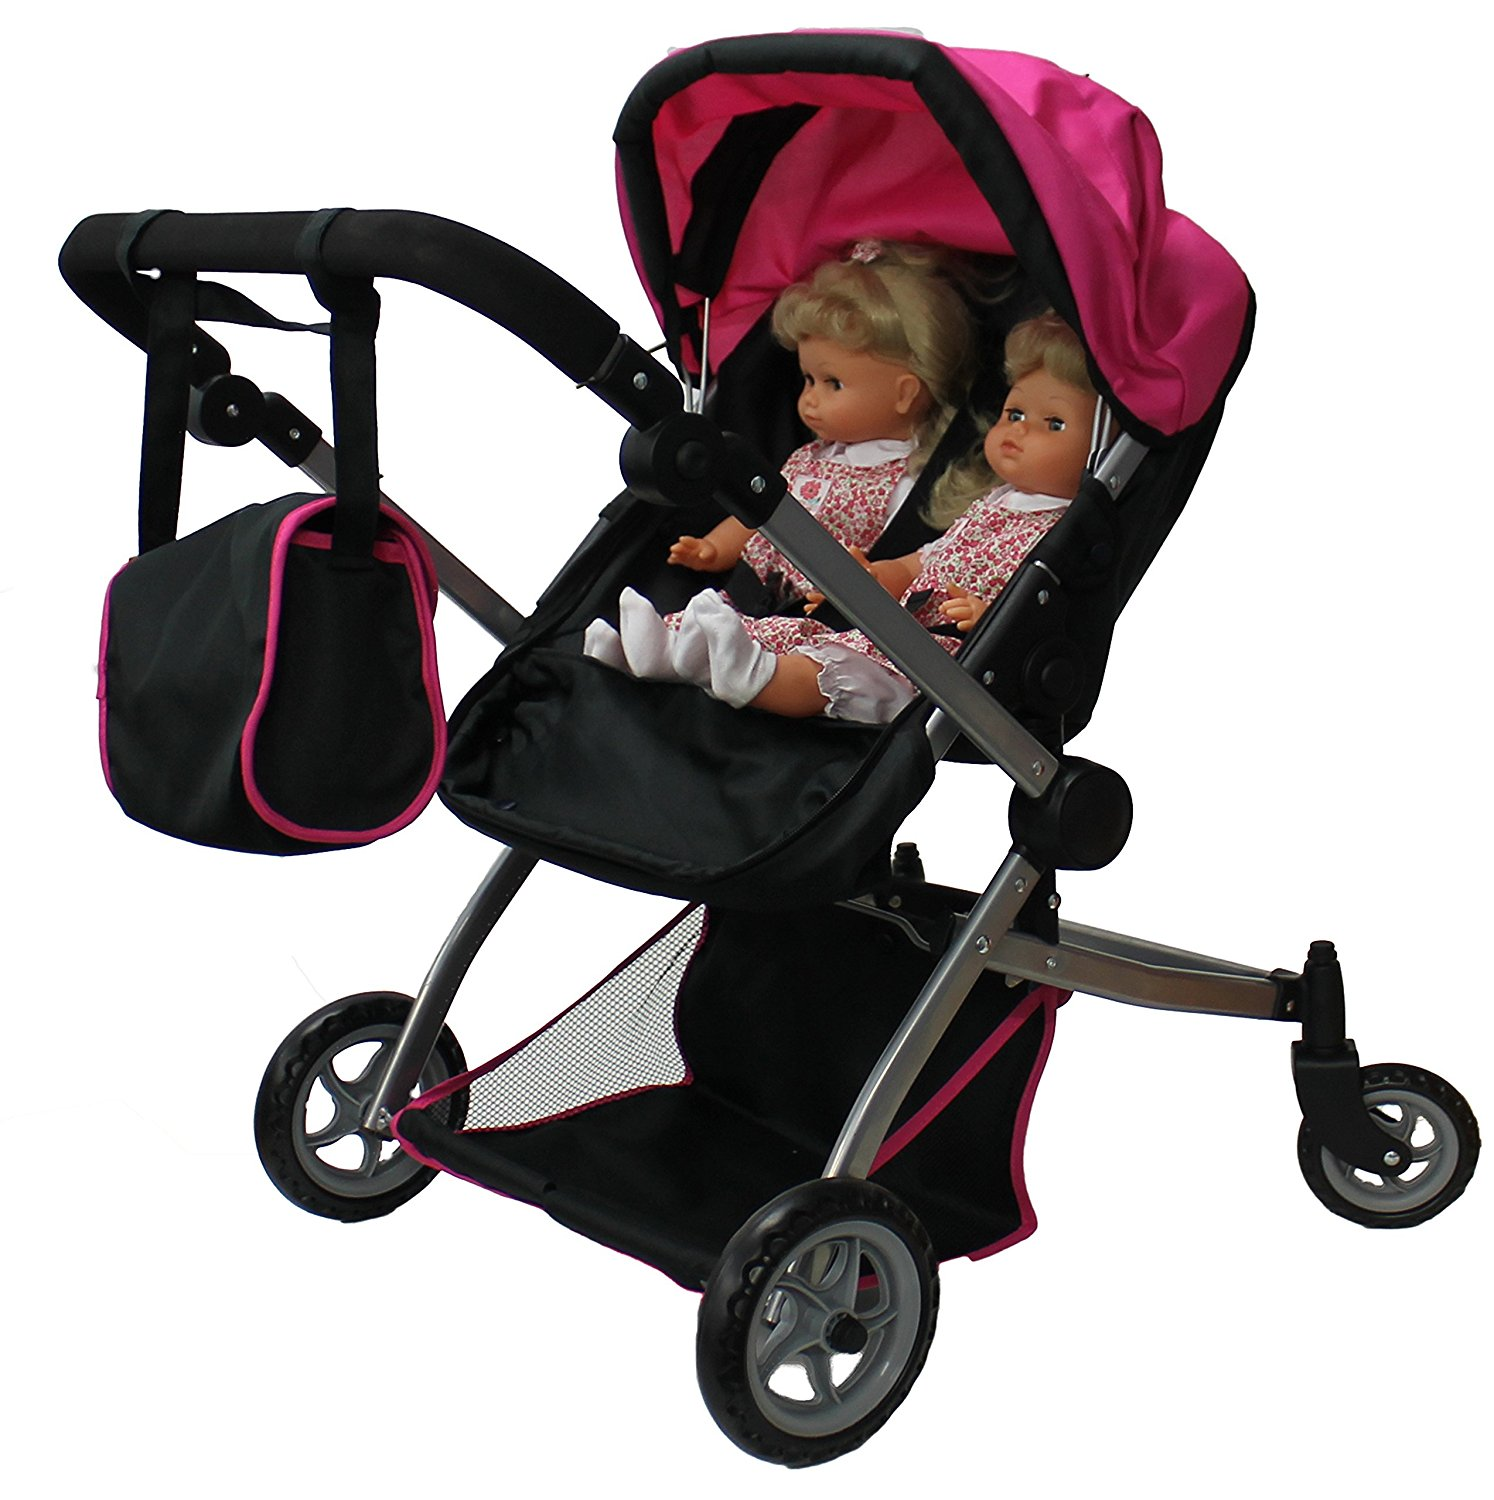 Baby Pram Amazon Top 6 Baby Doll Strollers Reviews – Buying Guide Bestter